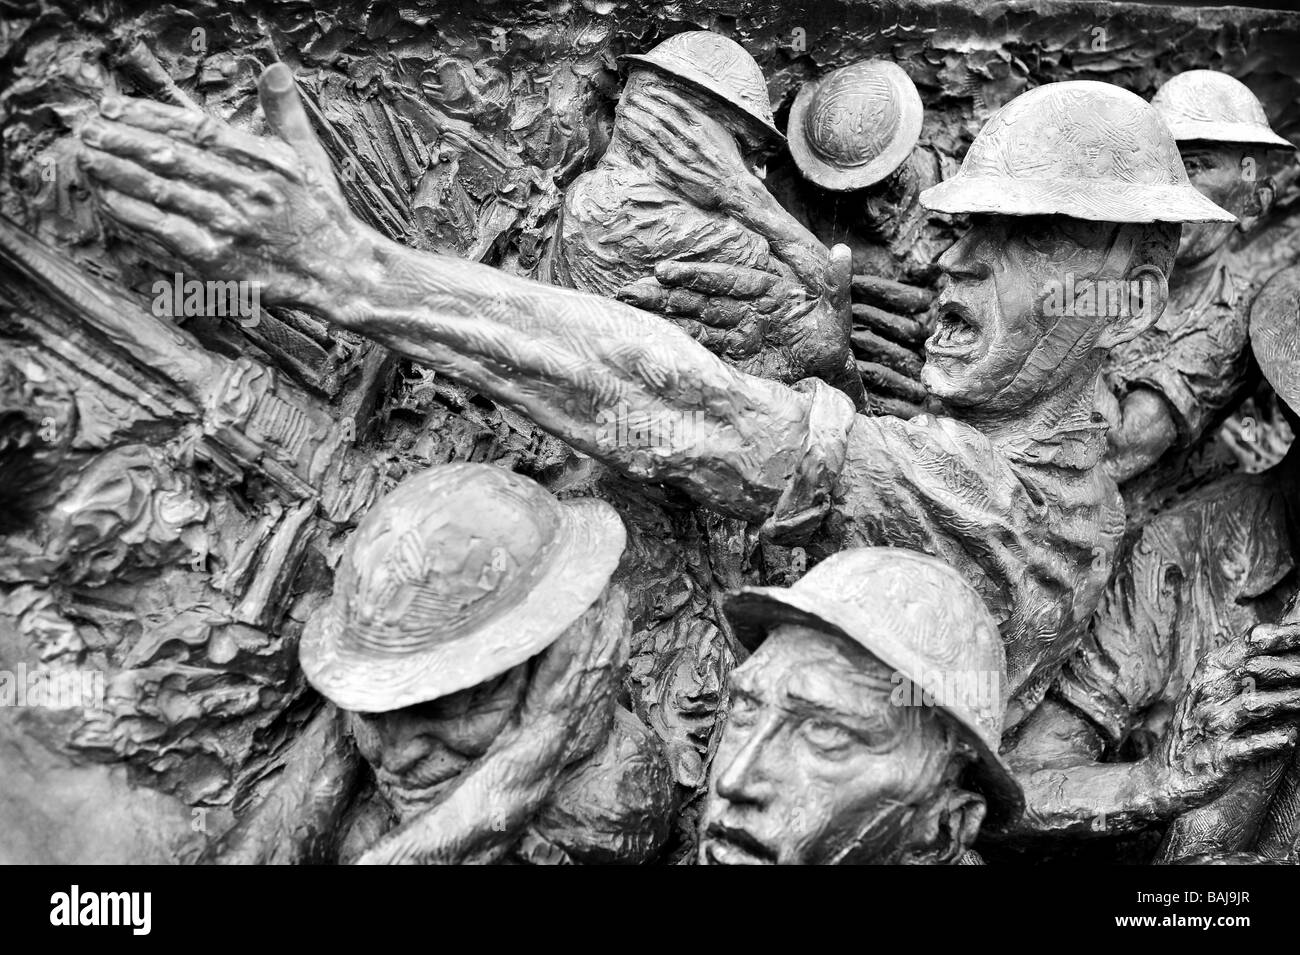 battle of britain memorial sculpture london - Stock Image